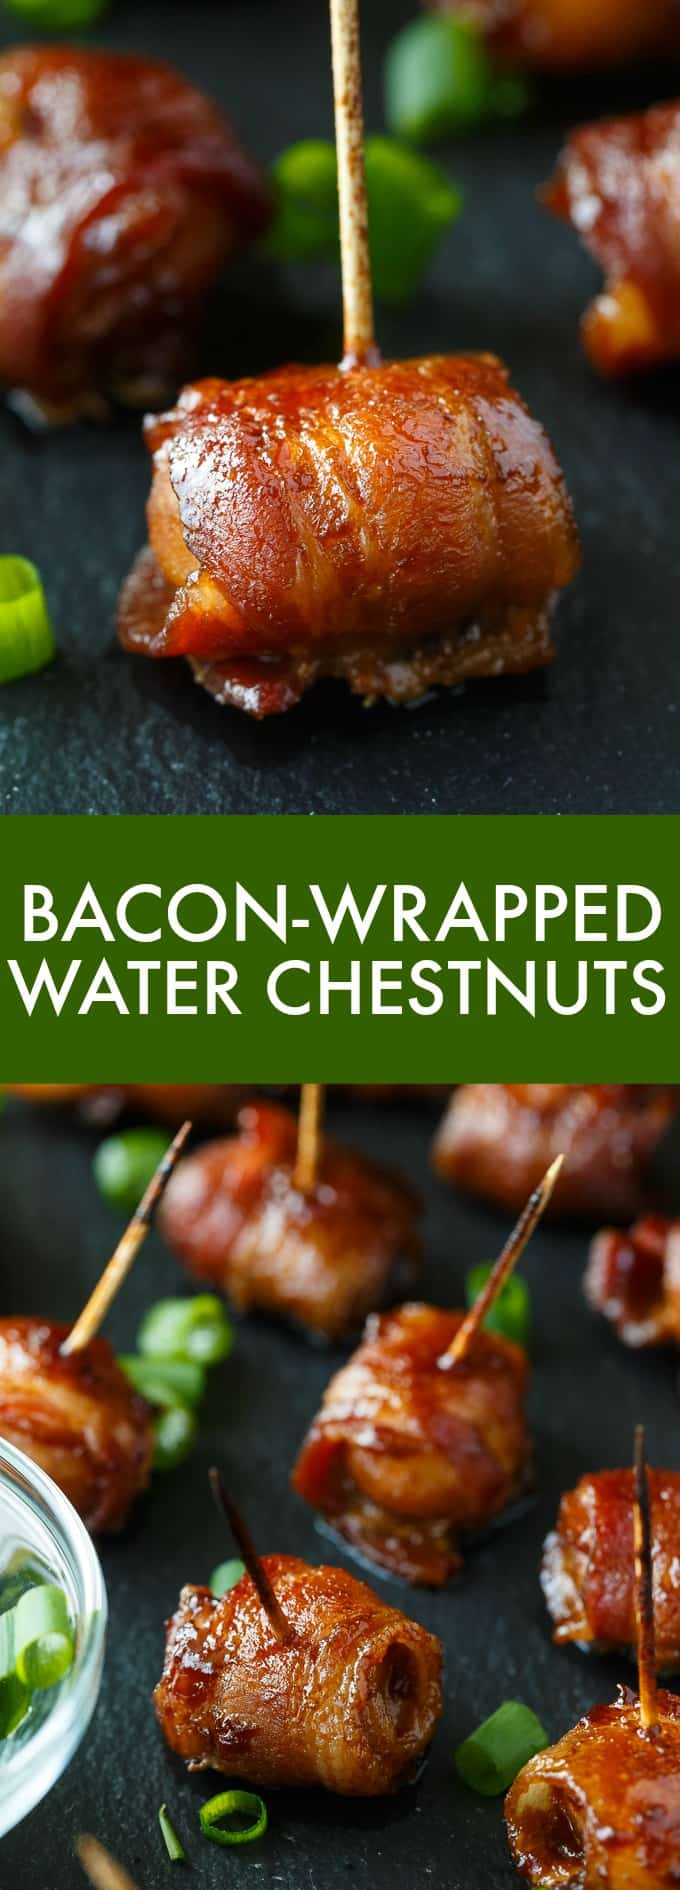 Bacon-Wrapped Water Chestnuts - Everyone goes NUTS over this easy appetizer. Whole water chestnuts are wrapped in bacon and marinated in a sweet/savory sauce.